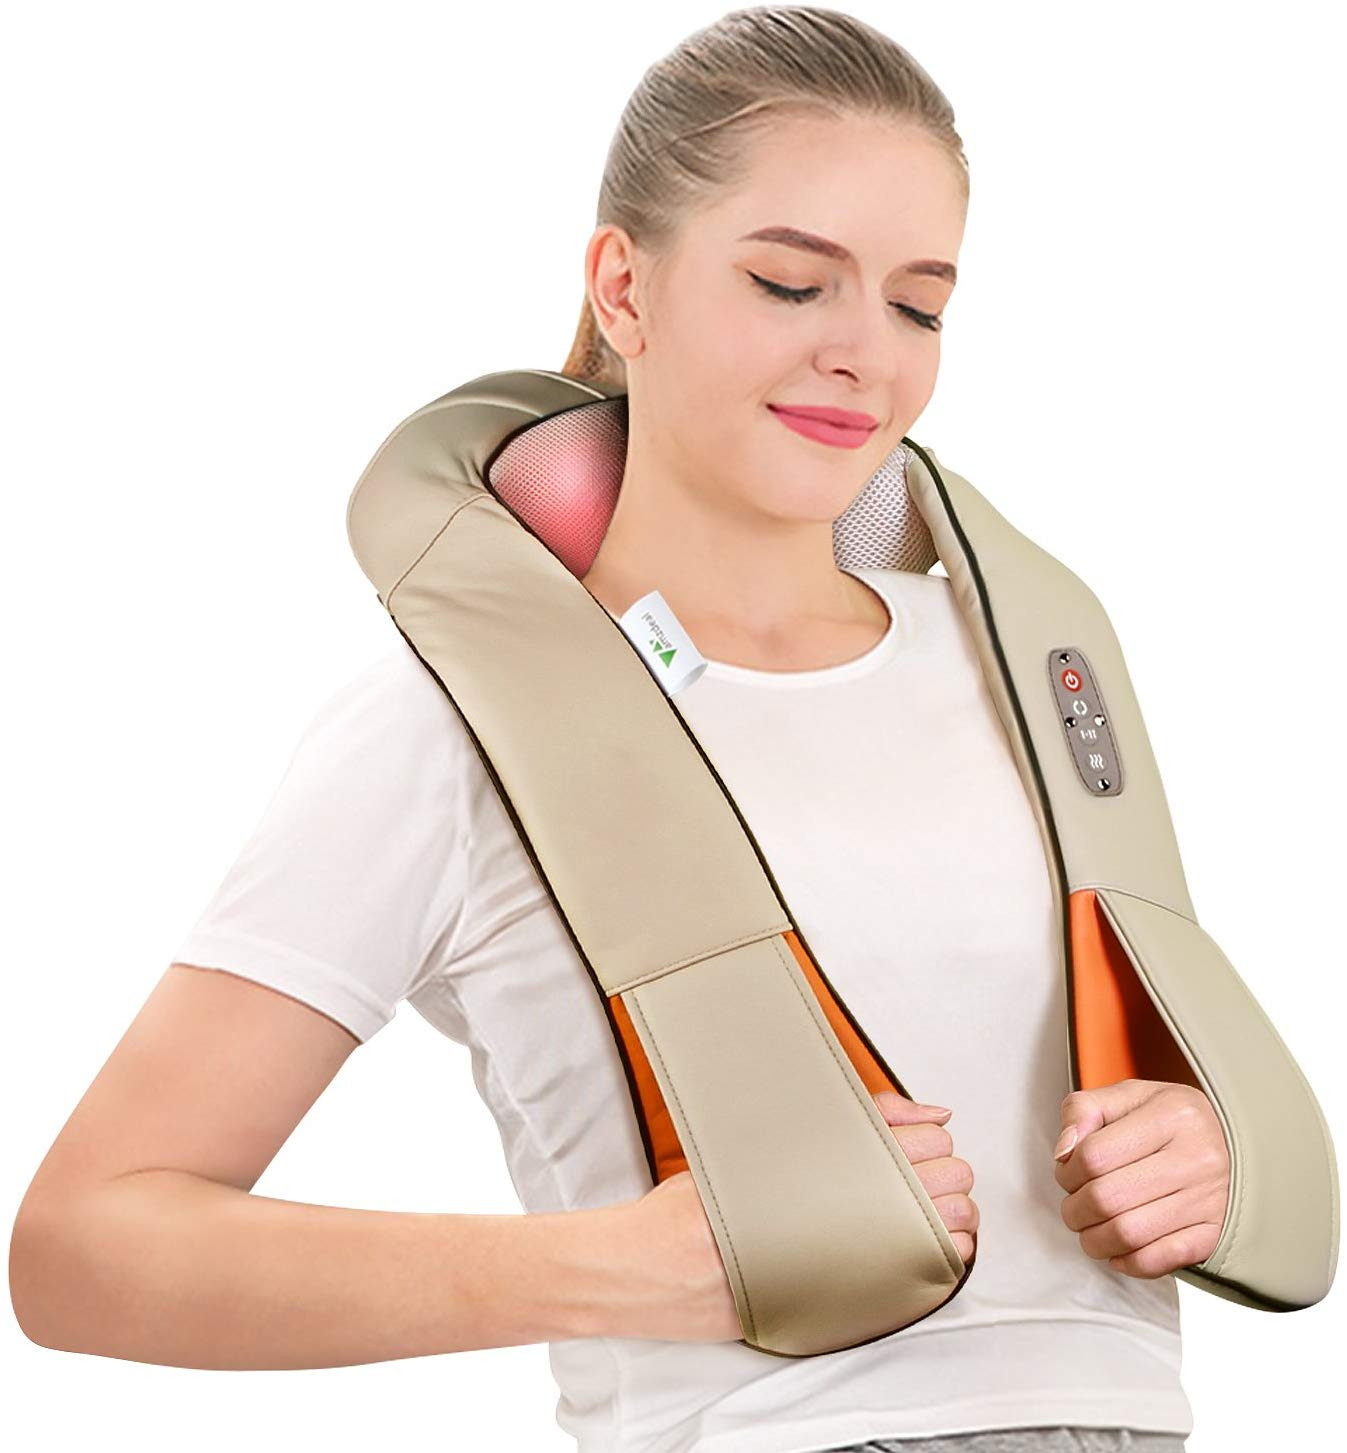 AMZDEAL Neck Shoulder Massage Kneading Electric Shiatsu Massager With Heat Deep Issue